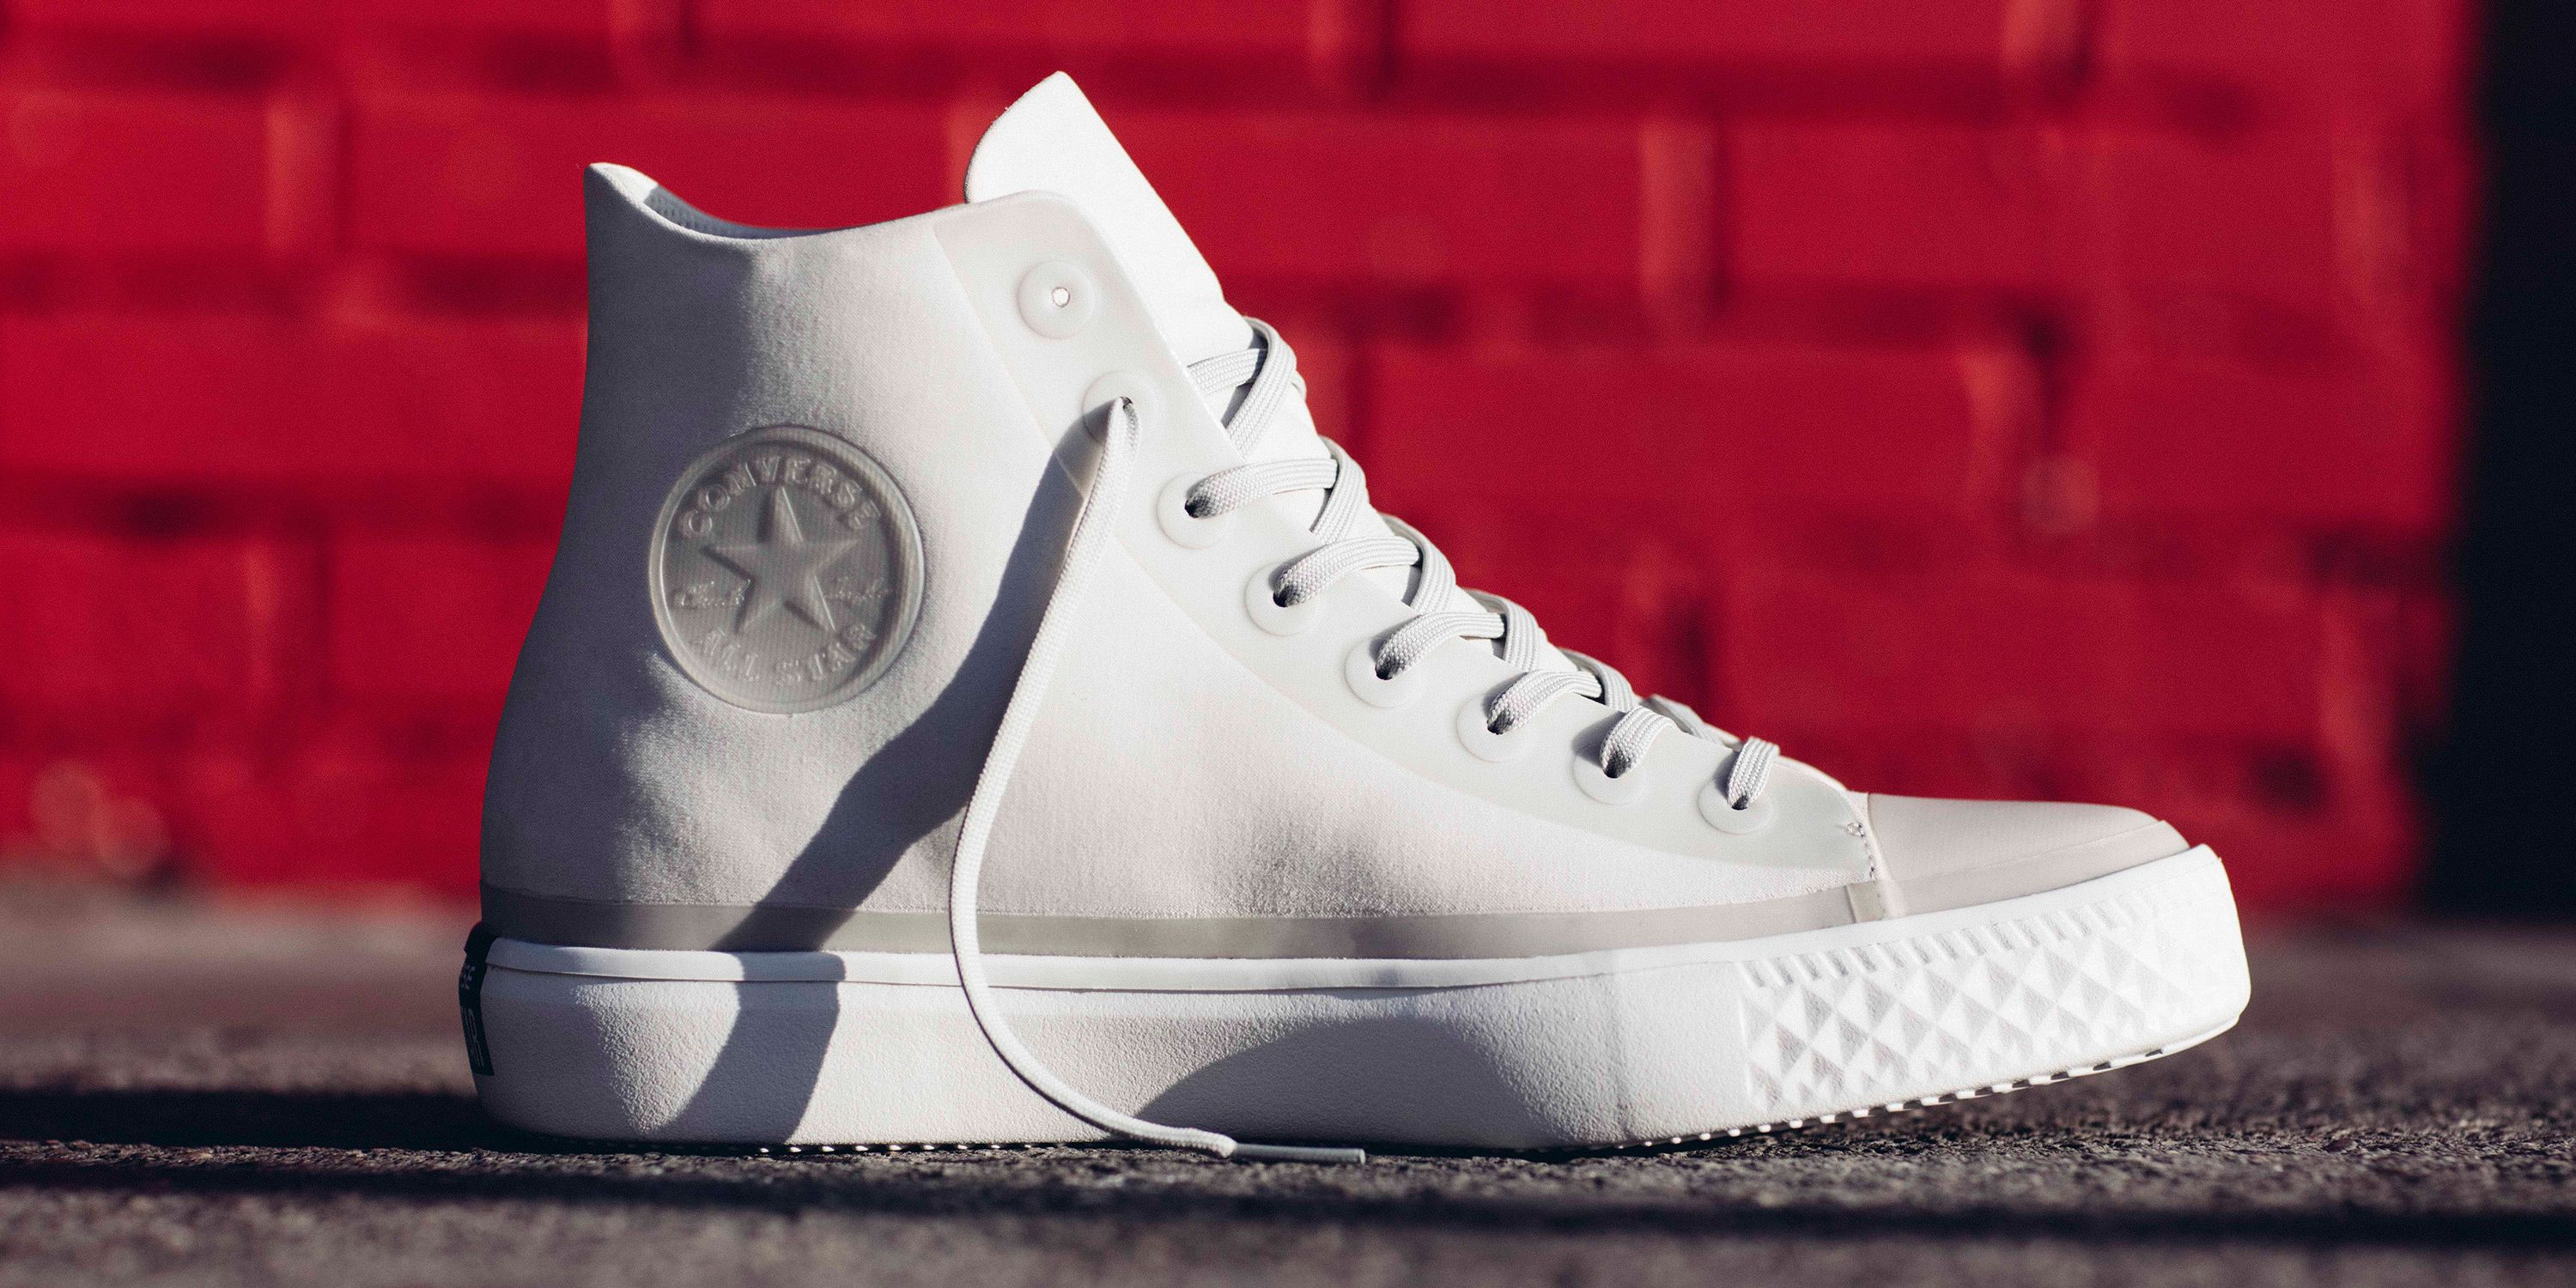 b6812e530def Converse Is Reimagining the Most Iconic Sneaker of All Time